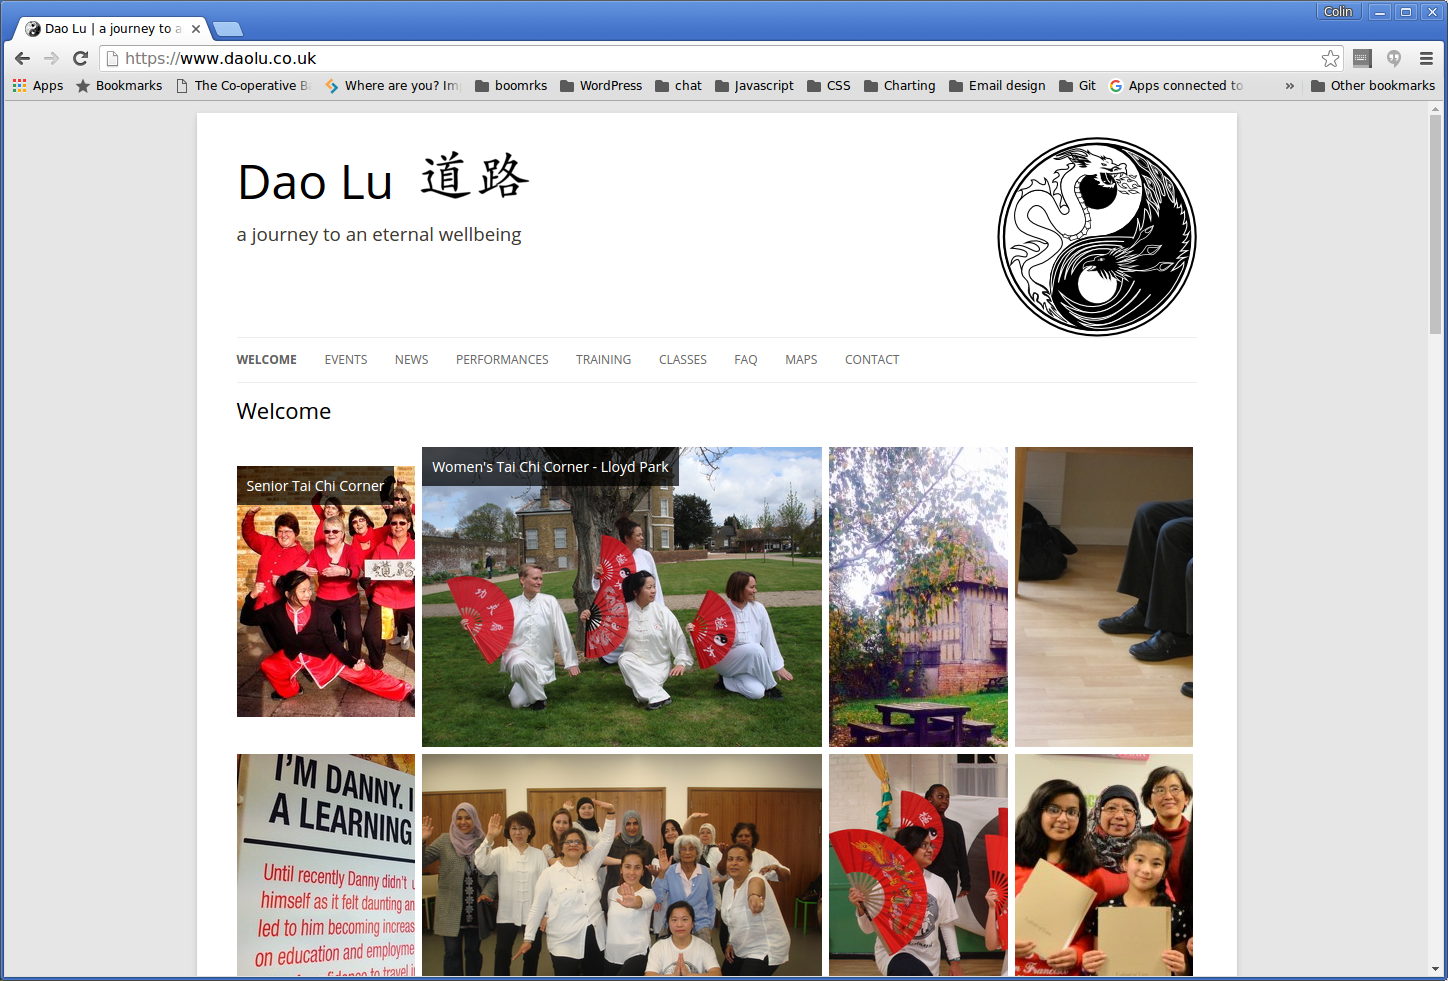 Screenshot-Dao Lu | a journey to an eternal wellbeing - Google Chrome